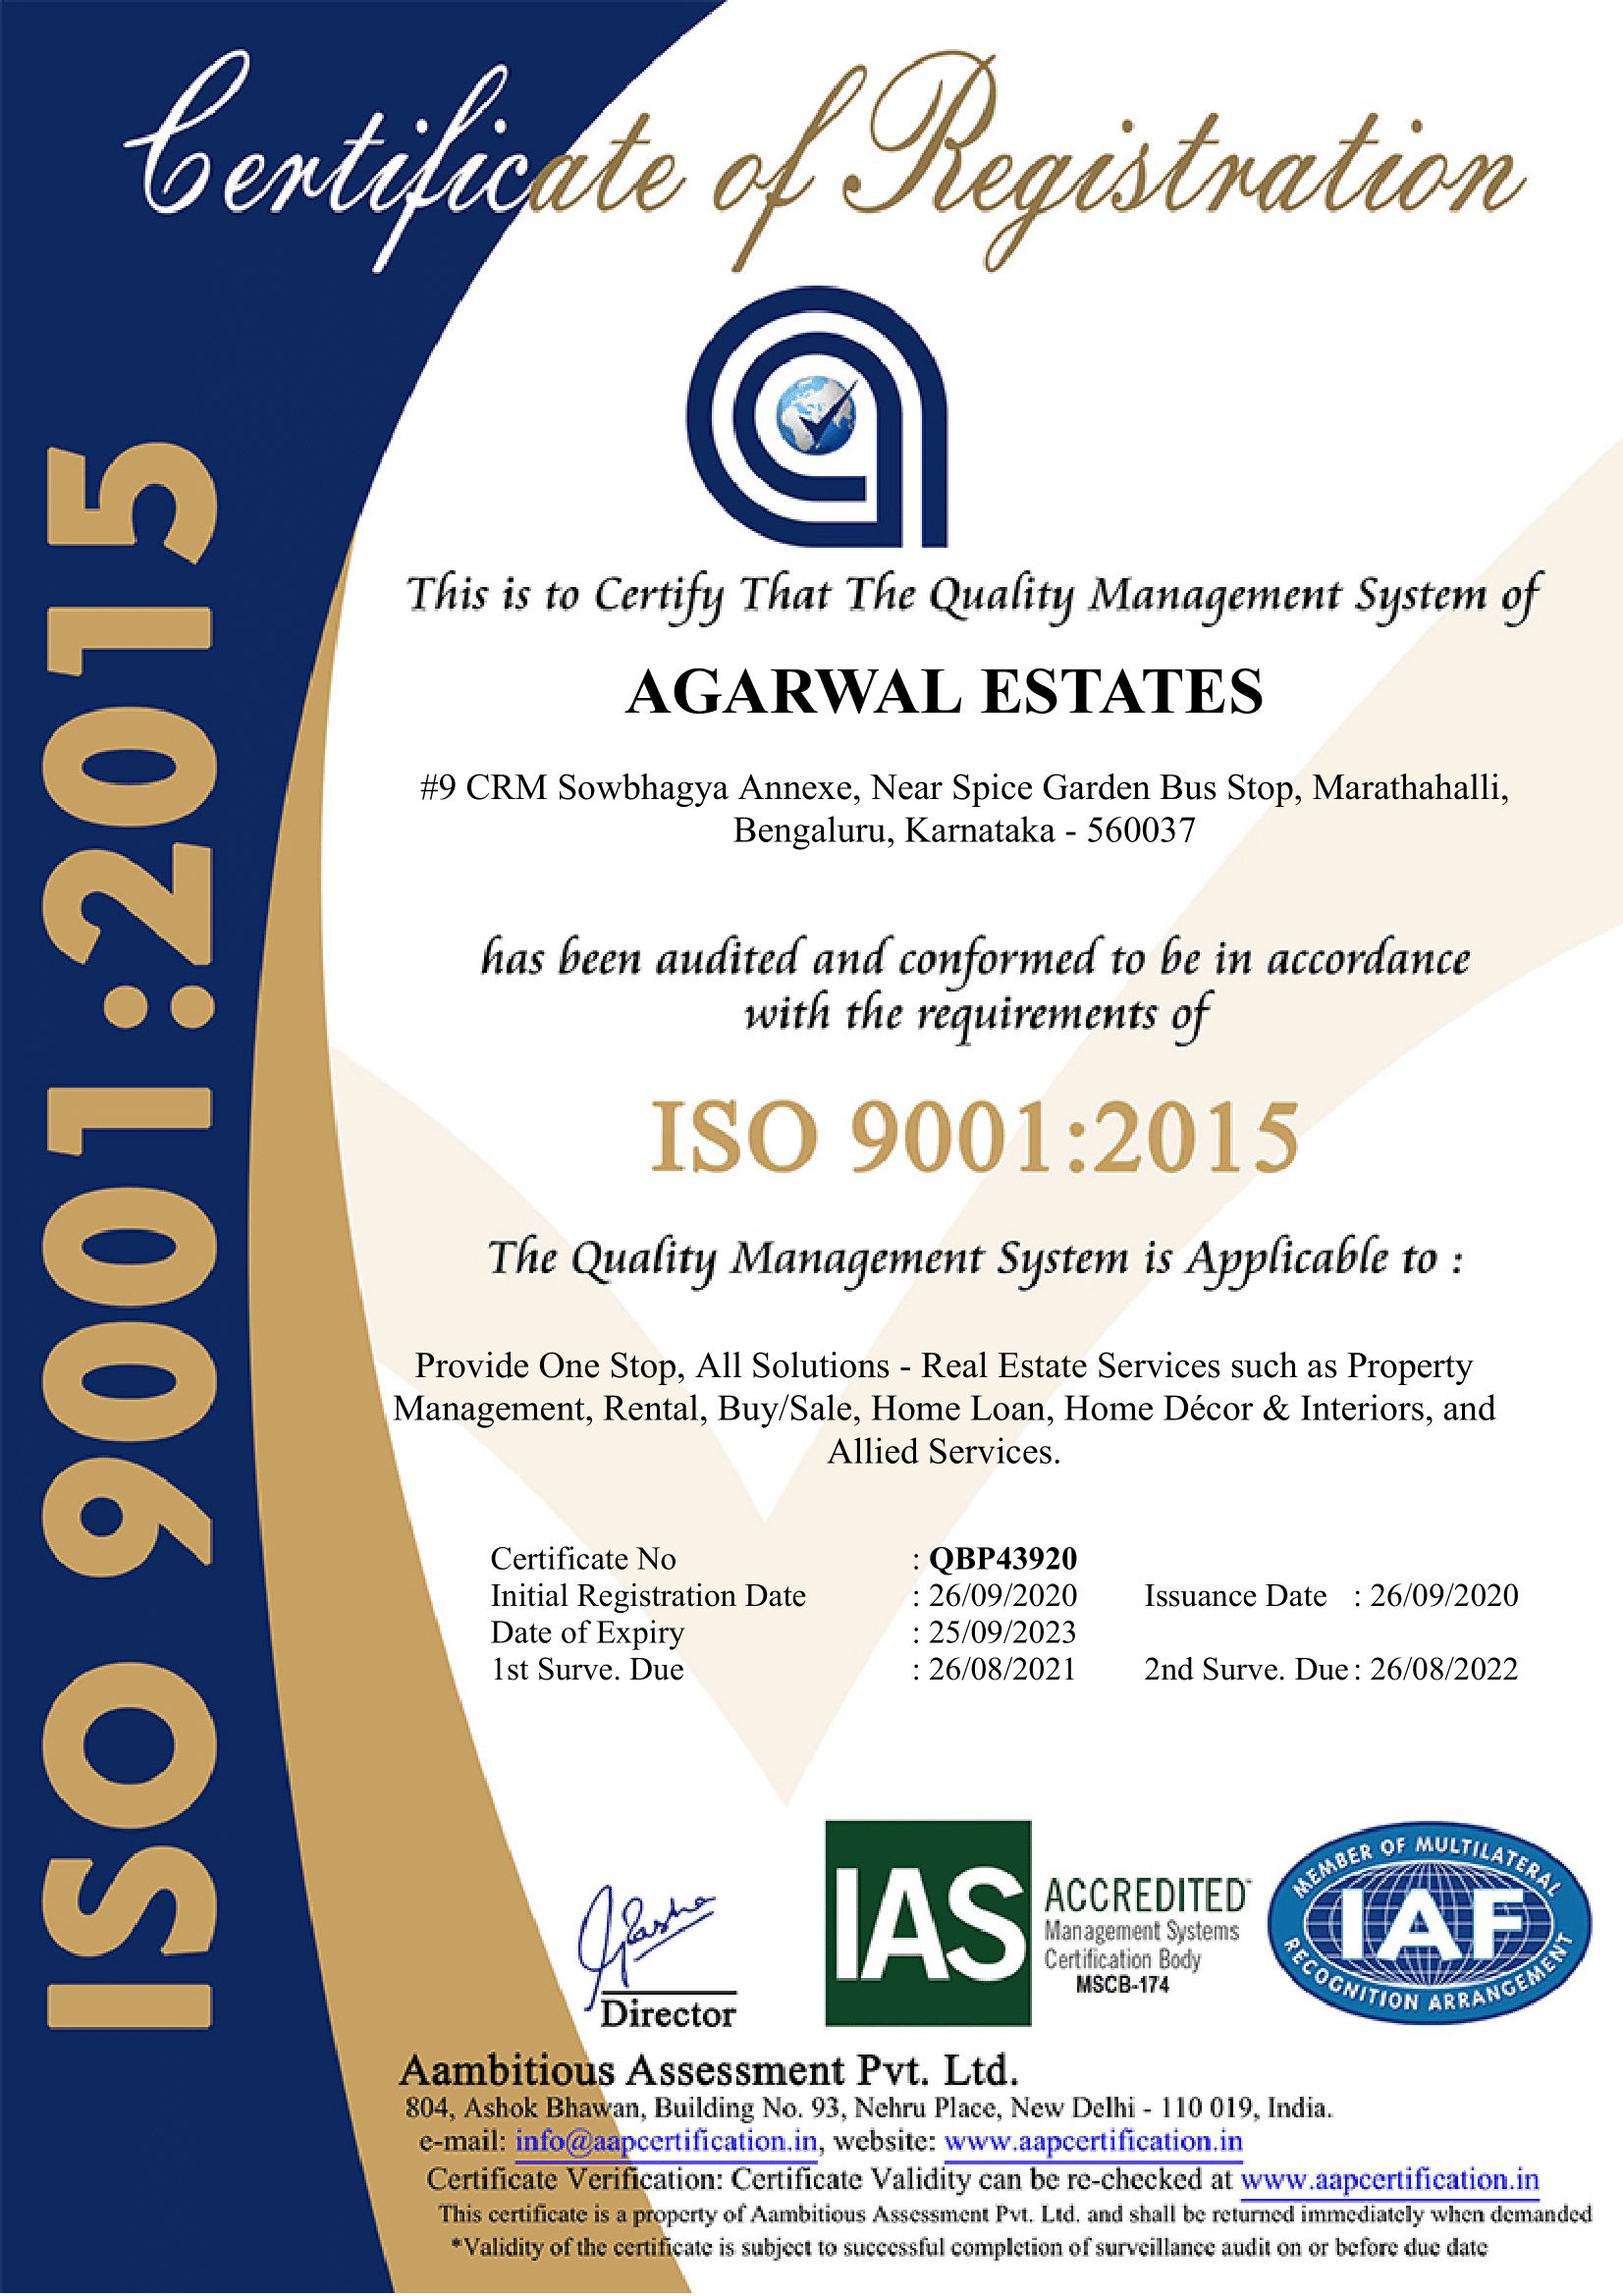 Agarwal Estates is now ISO 9001:2015 certified!